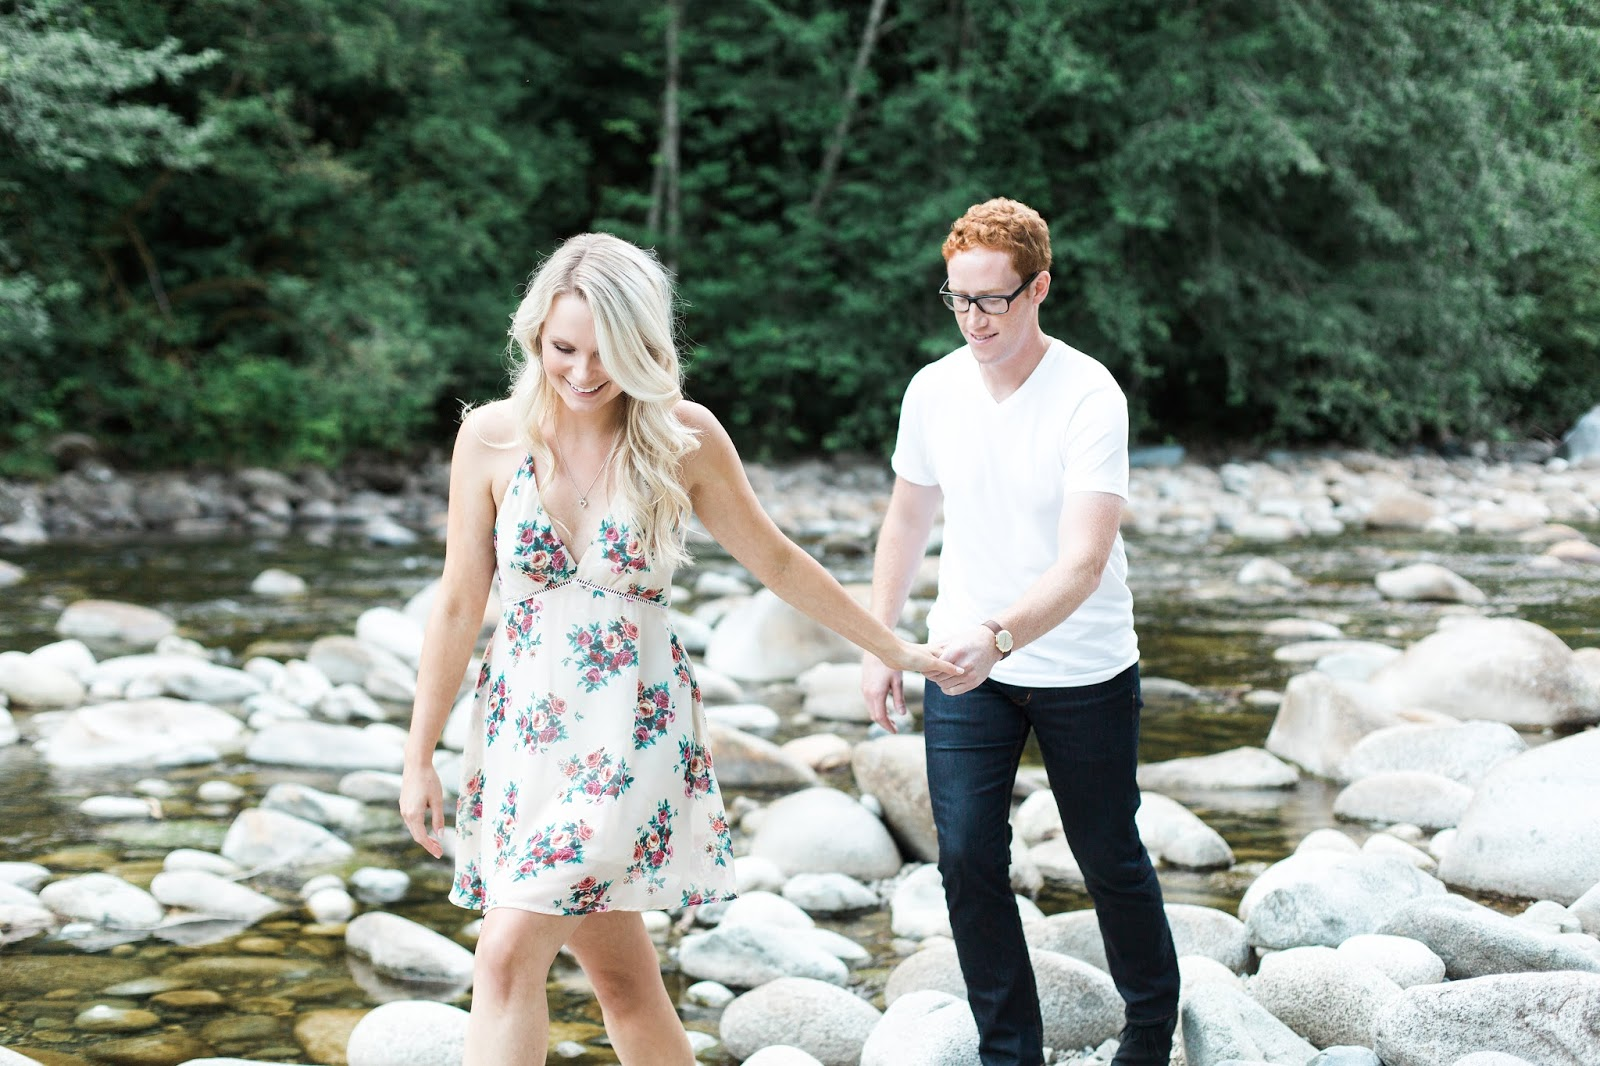 a blonde women and red haired man walk along riverside, happy and newly engaged in love